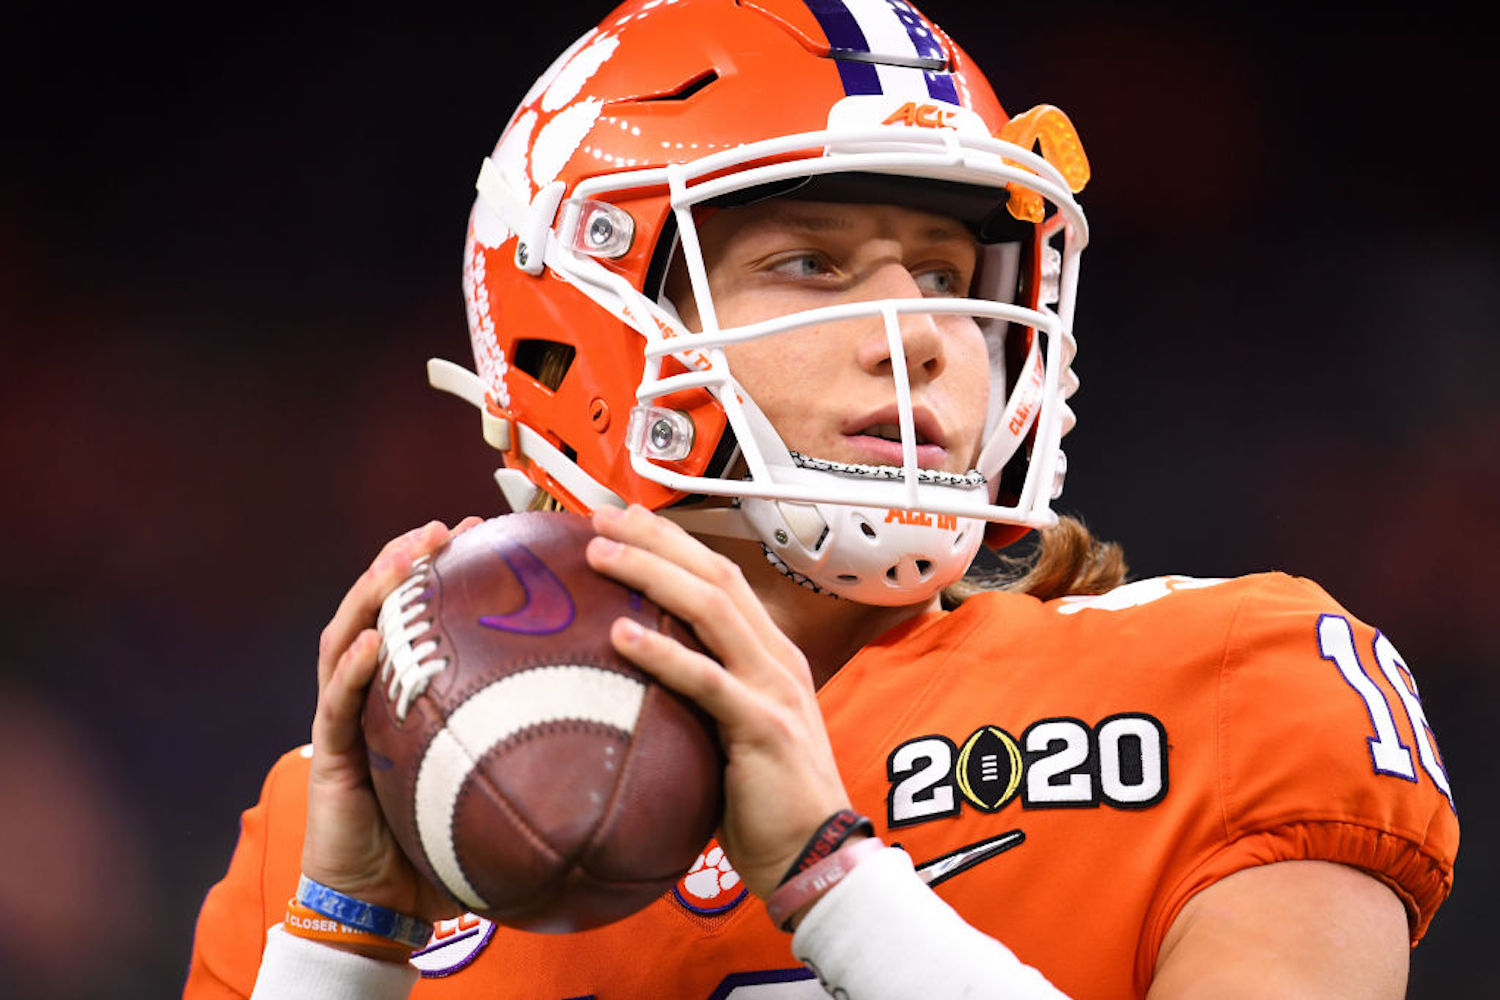 The 2020 College Football Season Just Received a Much-Needed Boost From Trevor Lawrence and Donald Trump